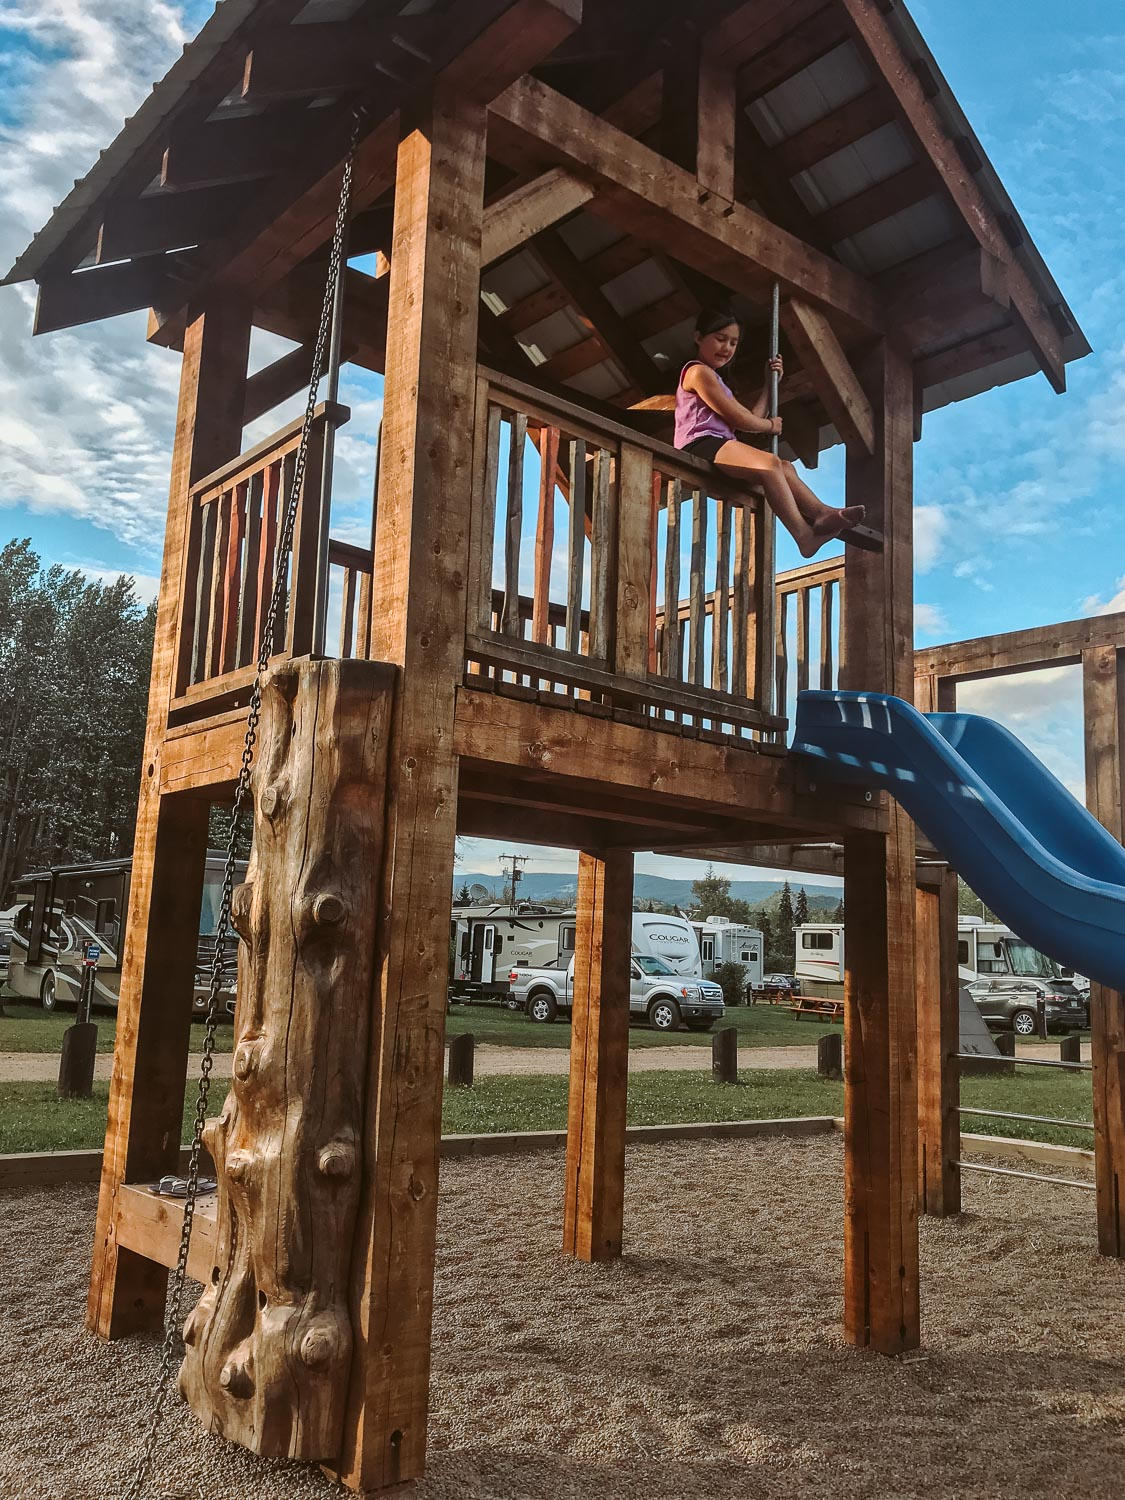 Playground at Riverside RV Park and Camping